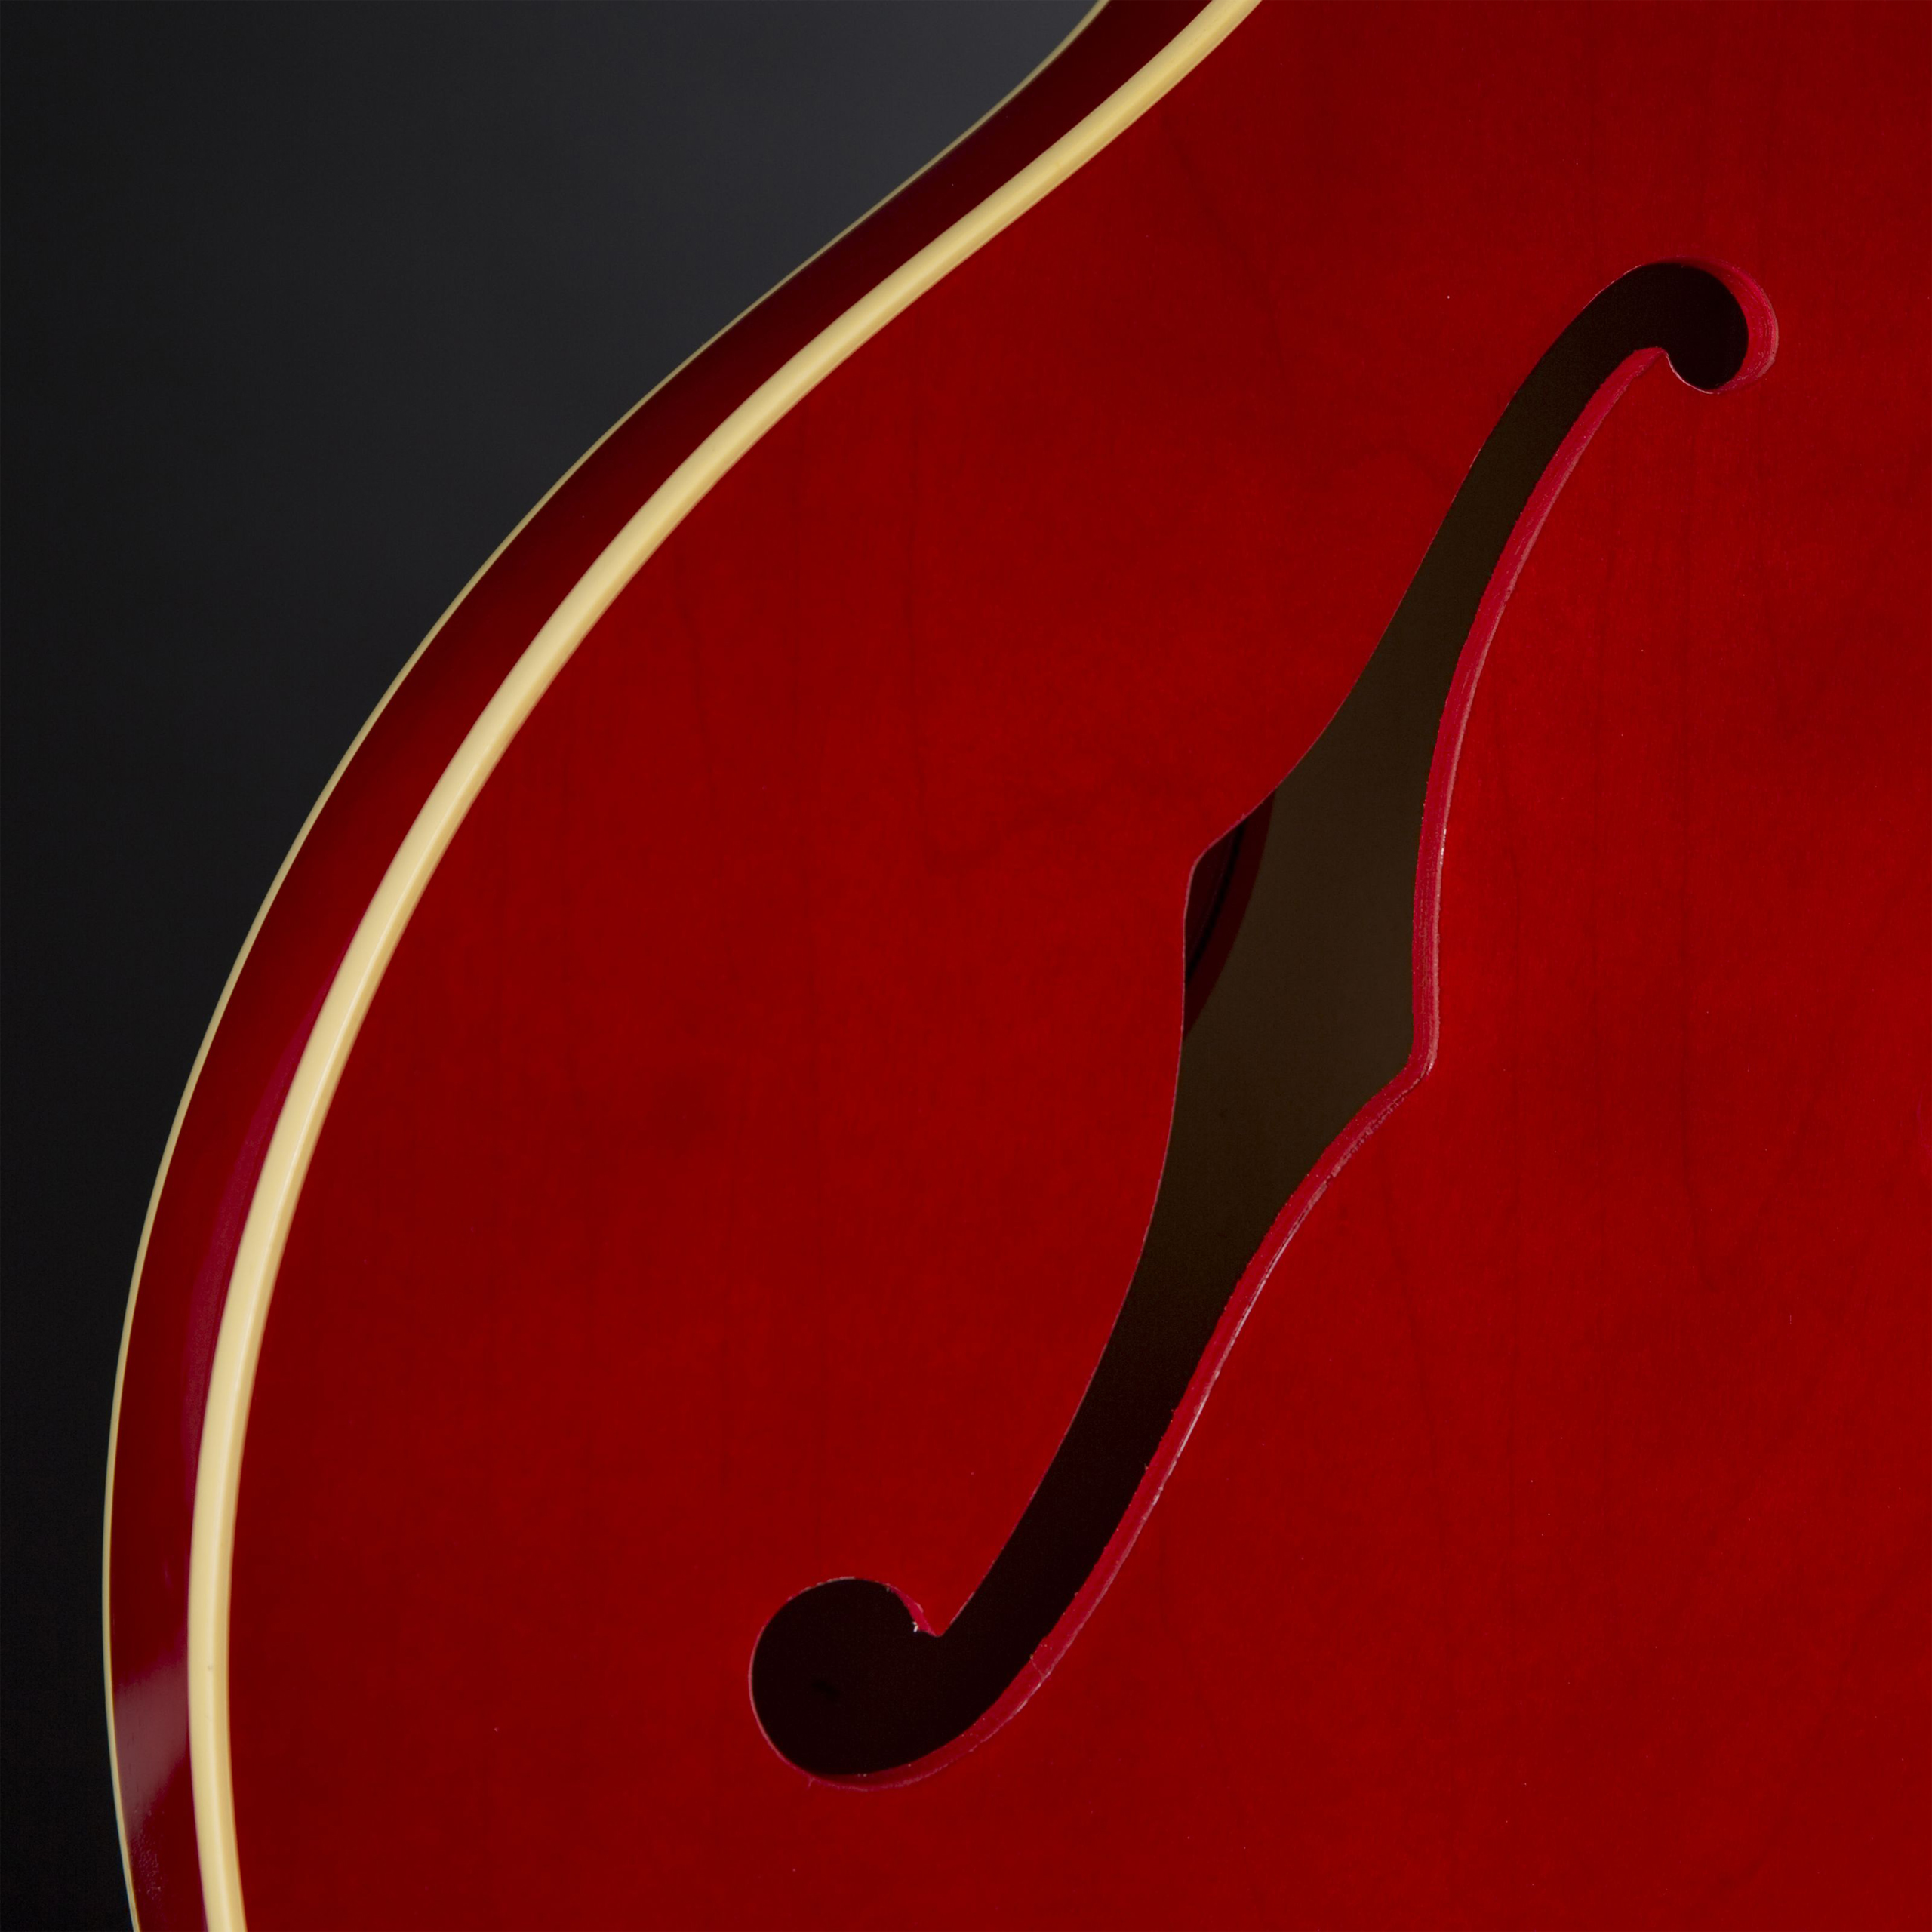 GIBSON 1959 ES-335 Dot Plain Faded Cherry #96052 Detail